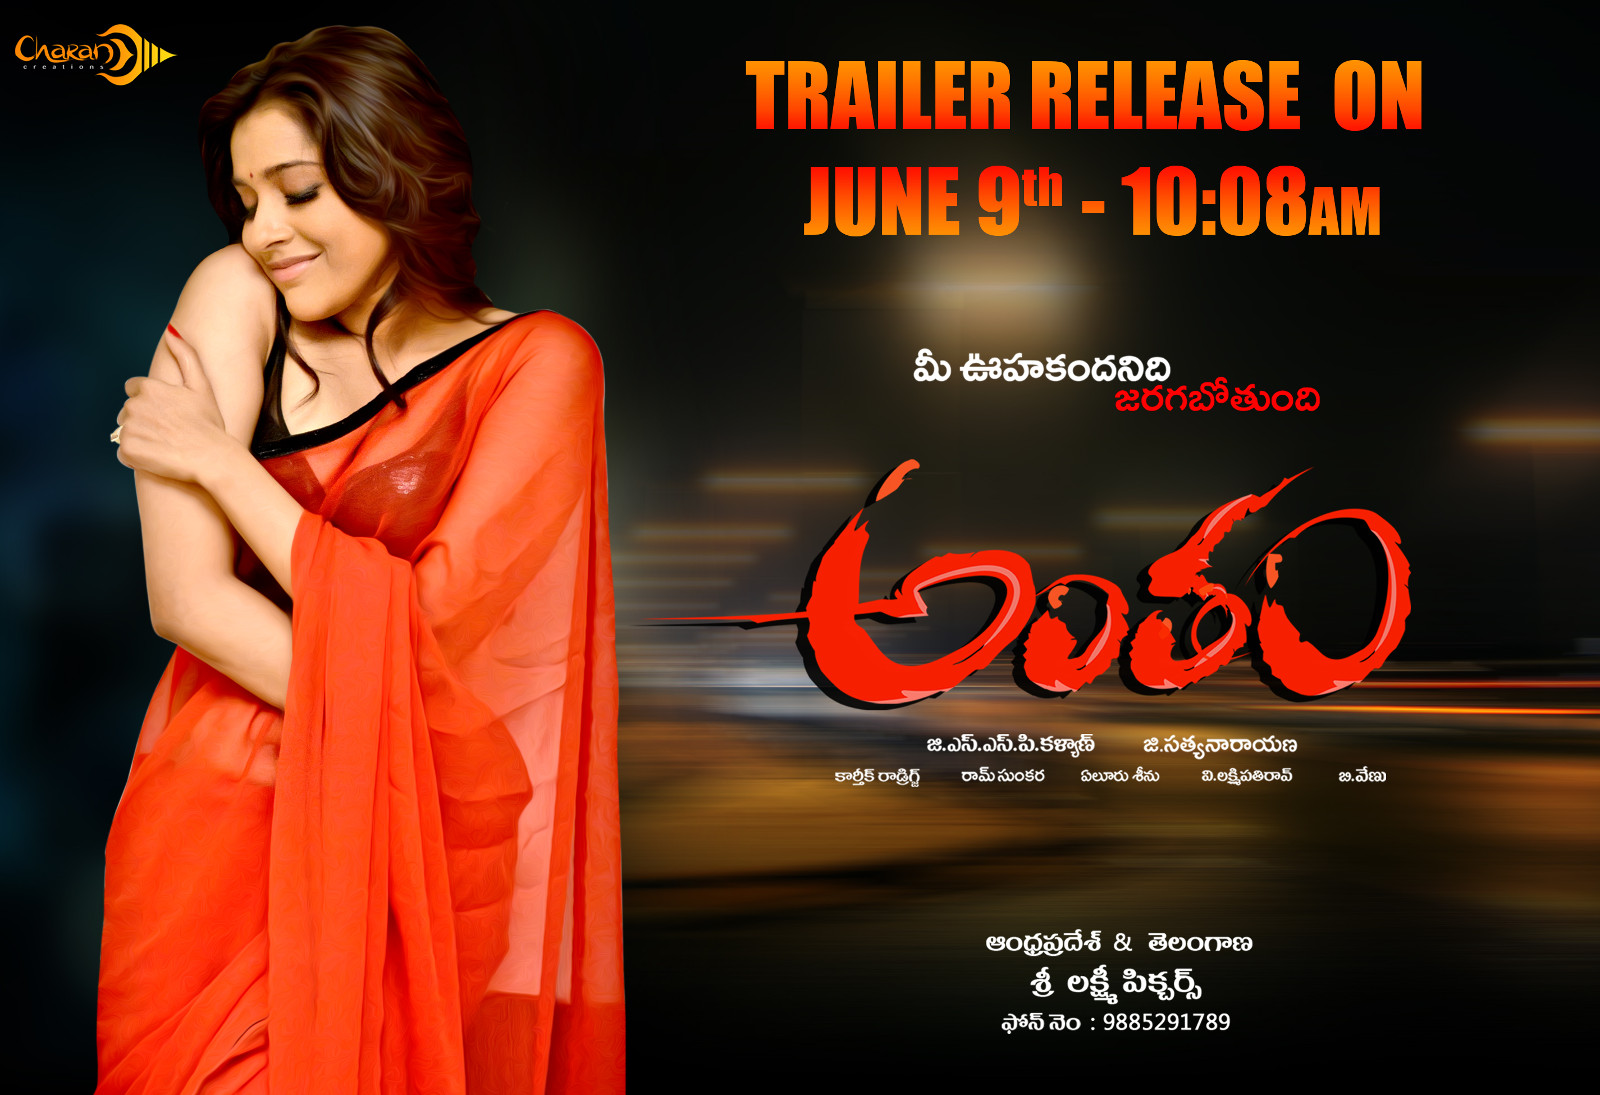 Antham Movie Trailer Release Poster | New Movie Posters